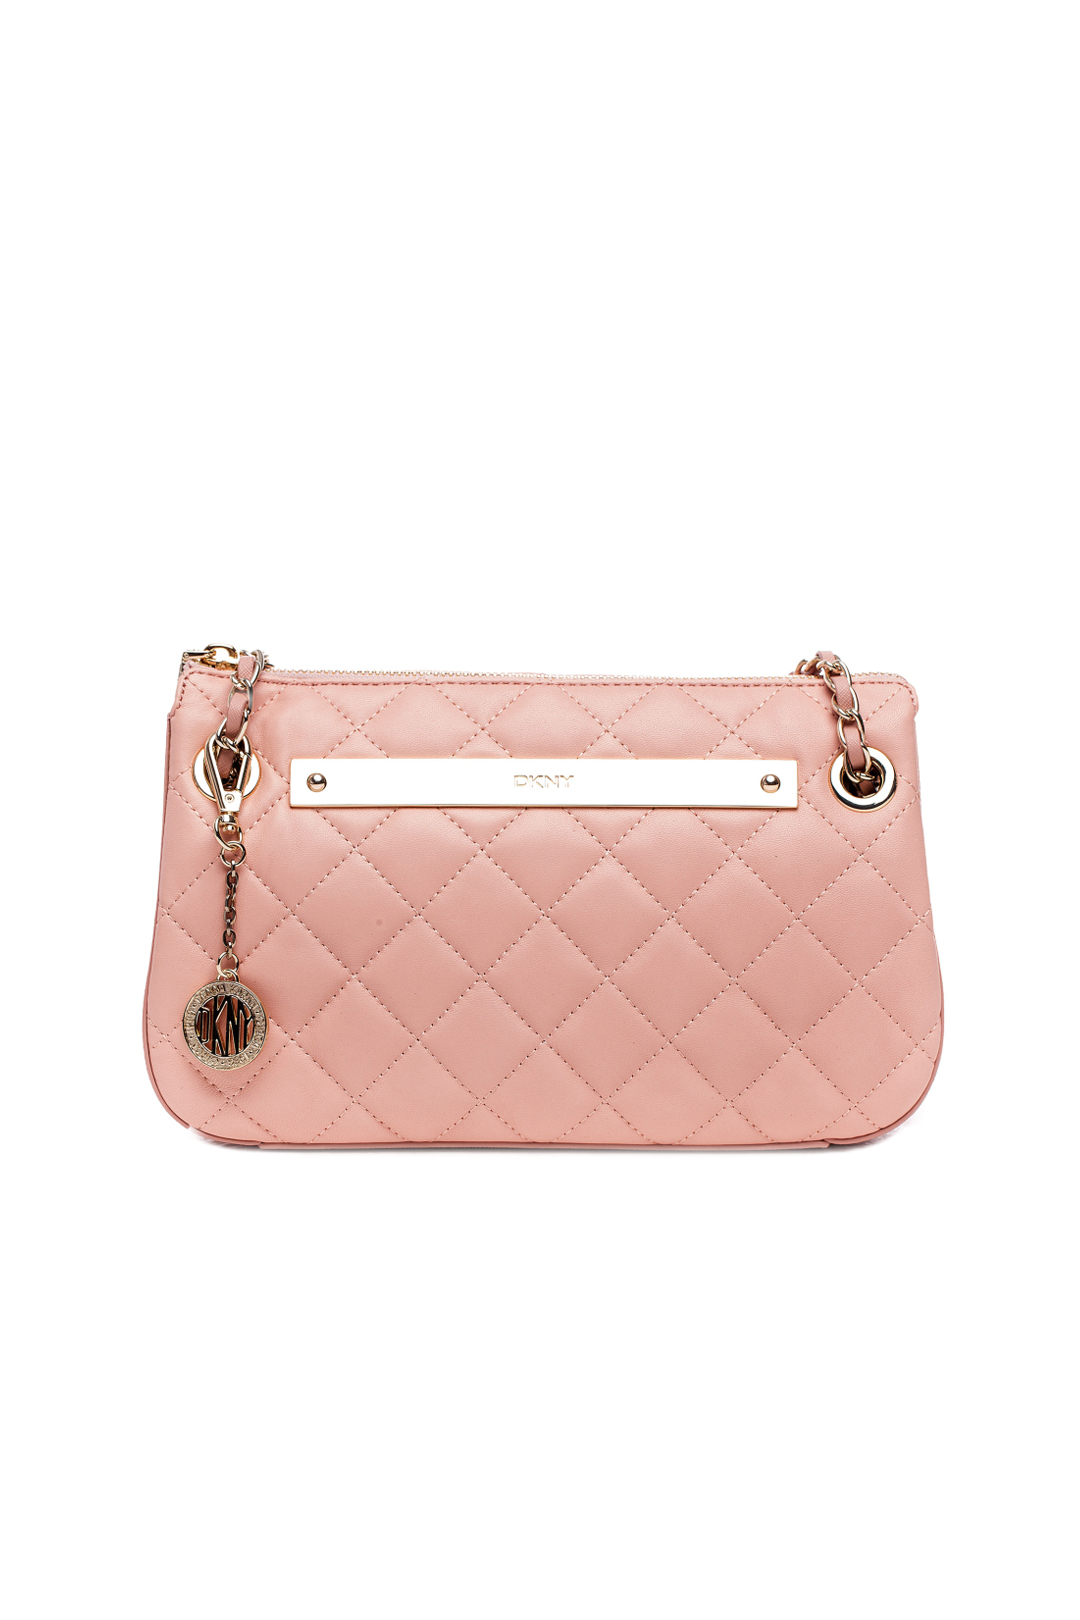 Blush Quilted Leather Bag